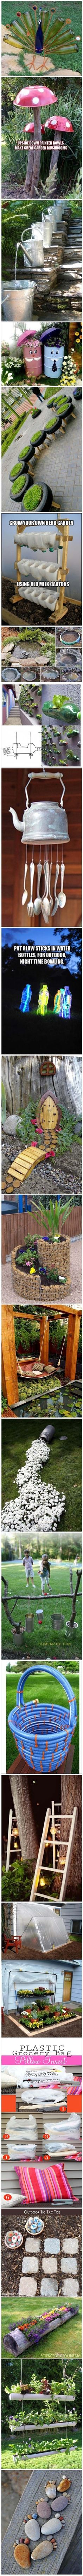 DIY Simple Outdoor Ideas | Instead of disposing your old furniture or stuffs, why not reinvent them into something new? Make them into something like these! Excellent reinventions | ↠@ambika95↞